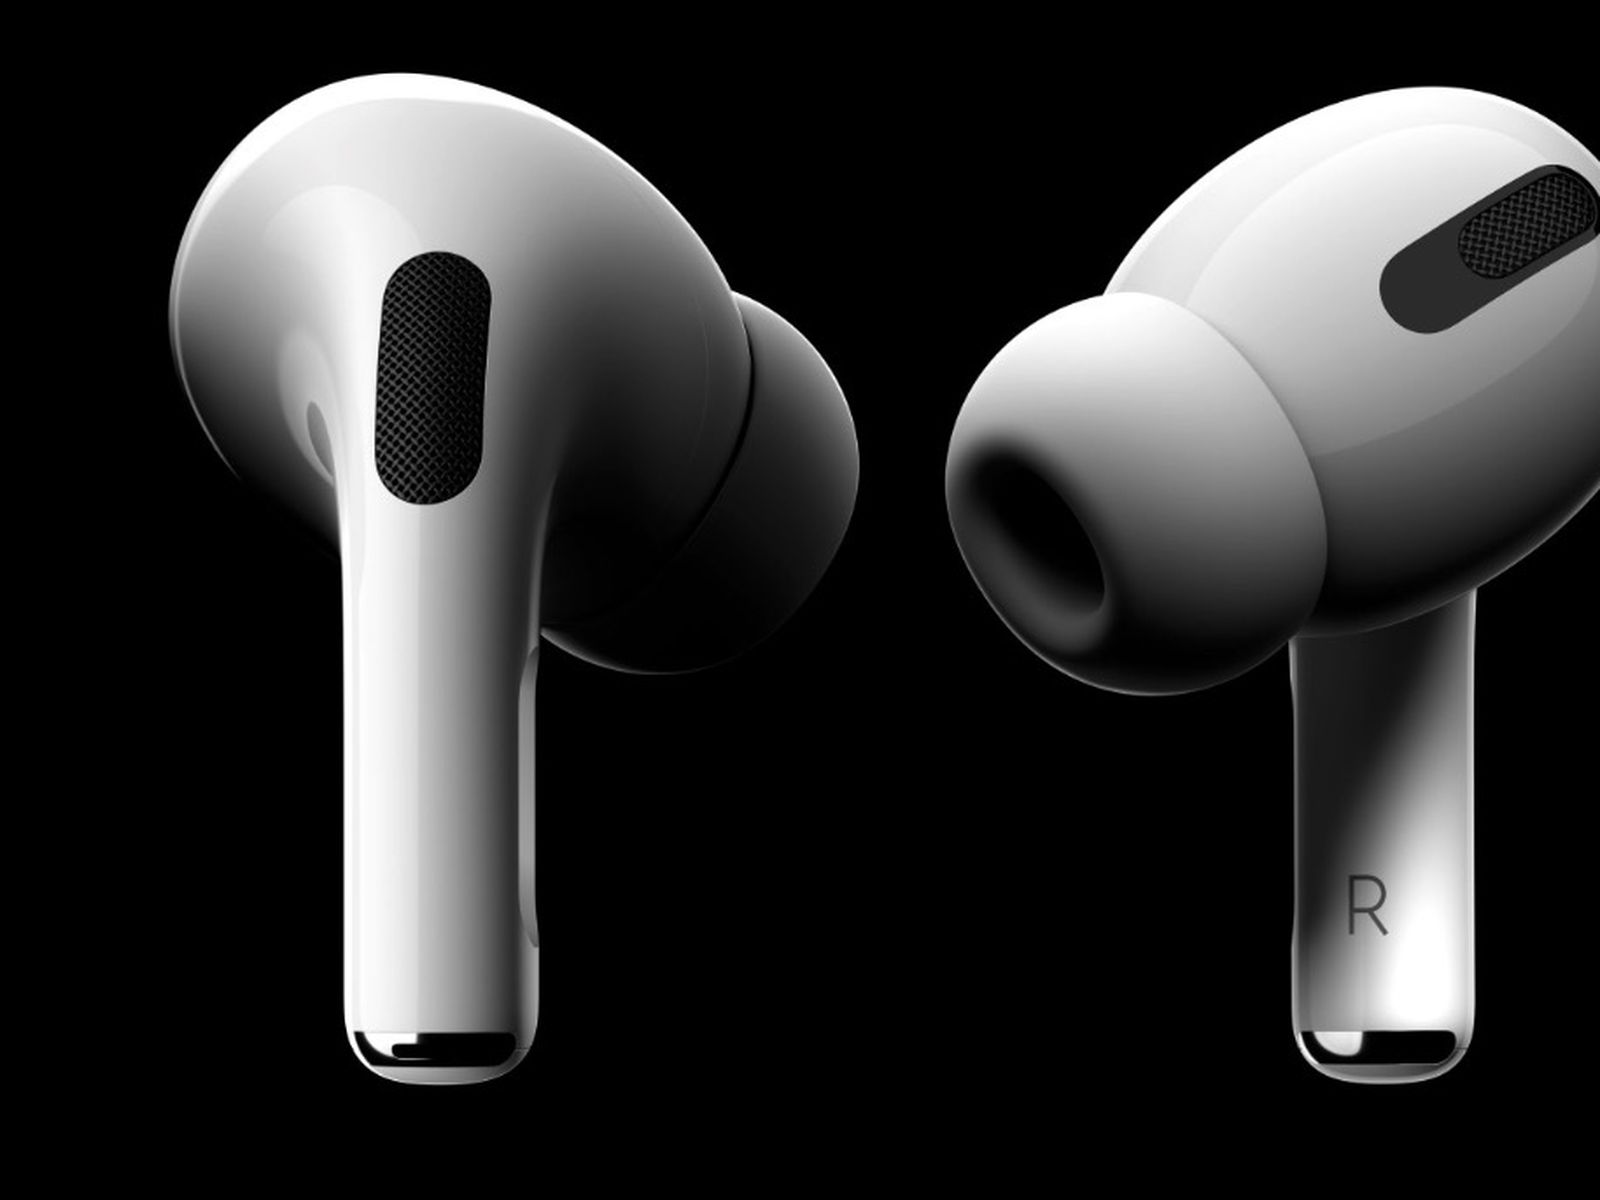 Airpods Vs Airpods Pro Features Compared Macrumors